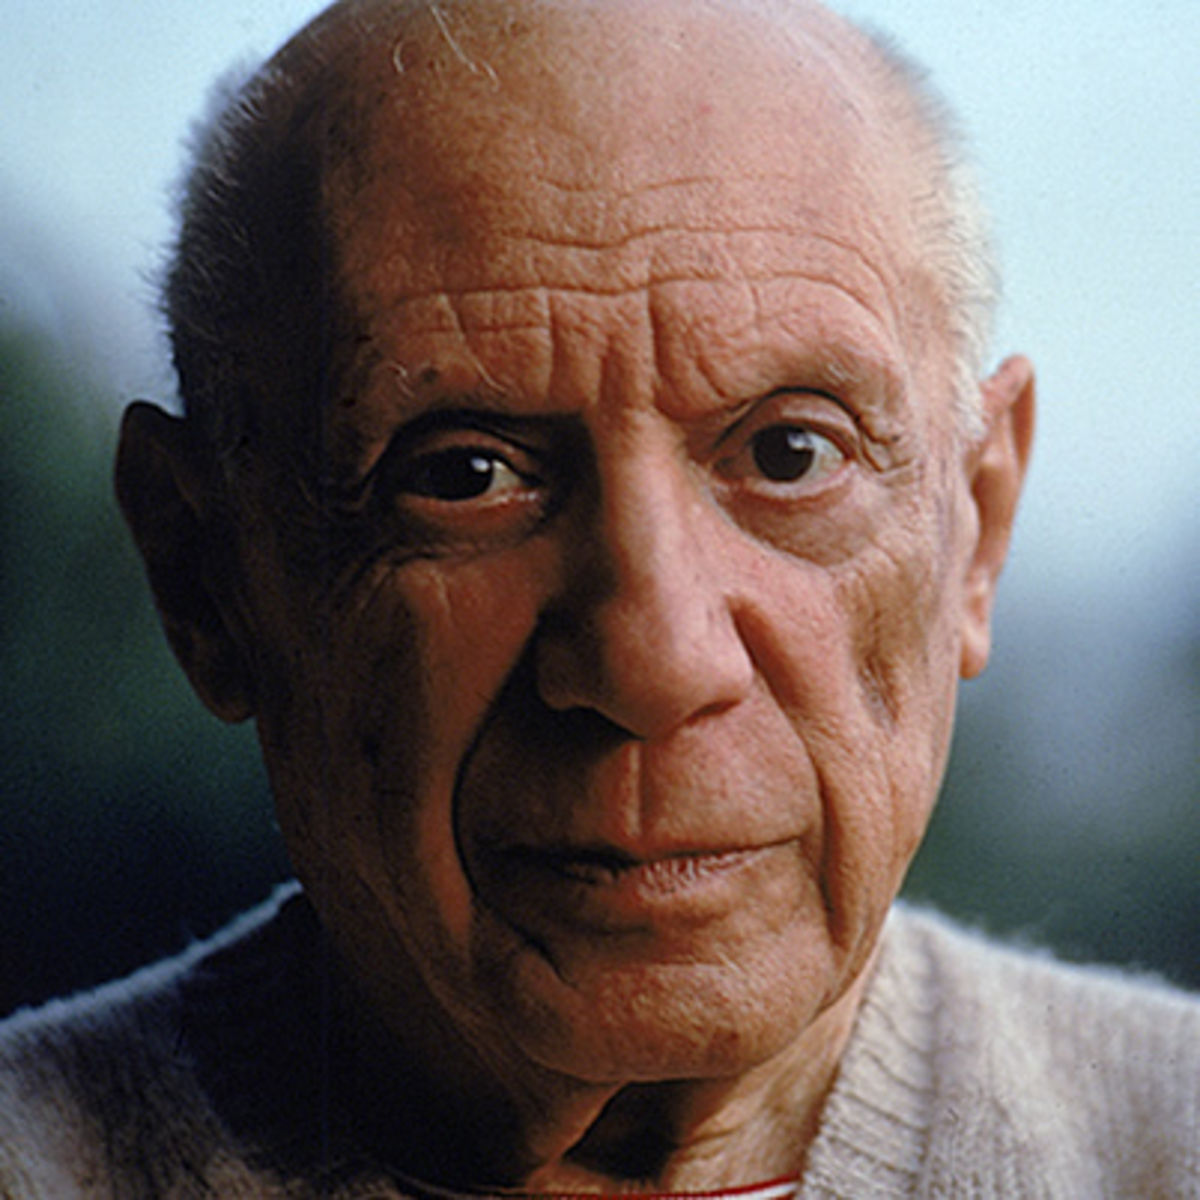 the life and times of artist pablo picasso After the ratings hit and critically acclaimed genius: einstein, the national geographic channel's first ever scripted drama returns for a new series focused on the life and times of the controversial 20 th century artist pablo picasso.